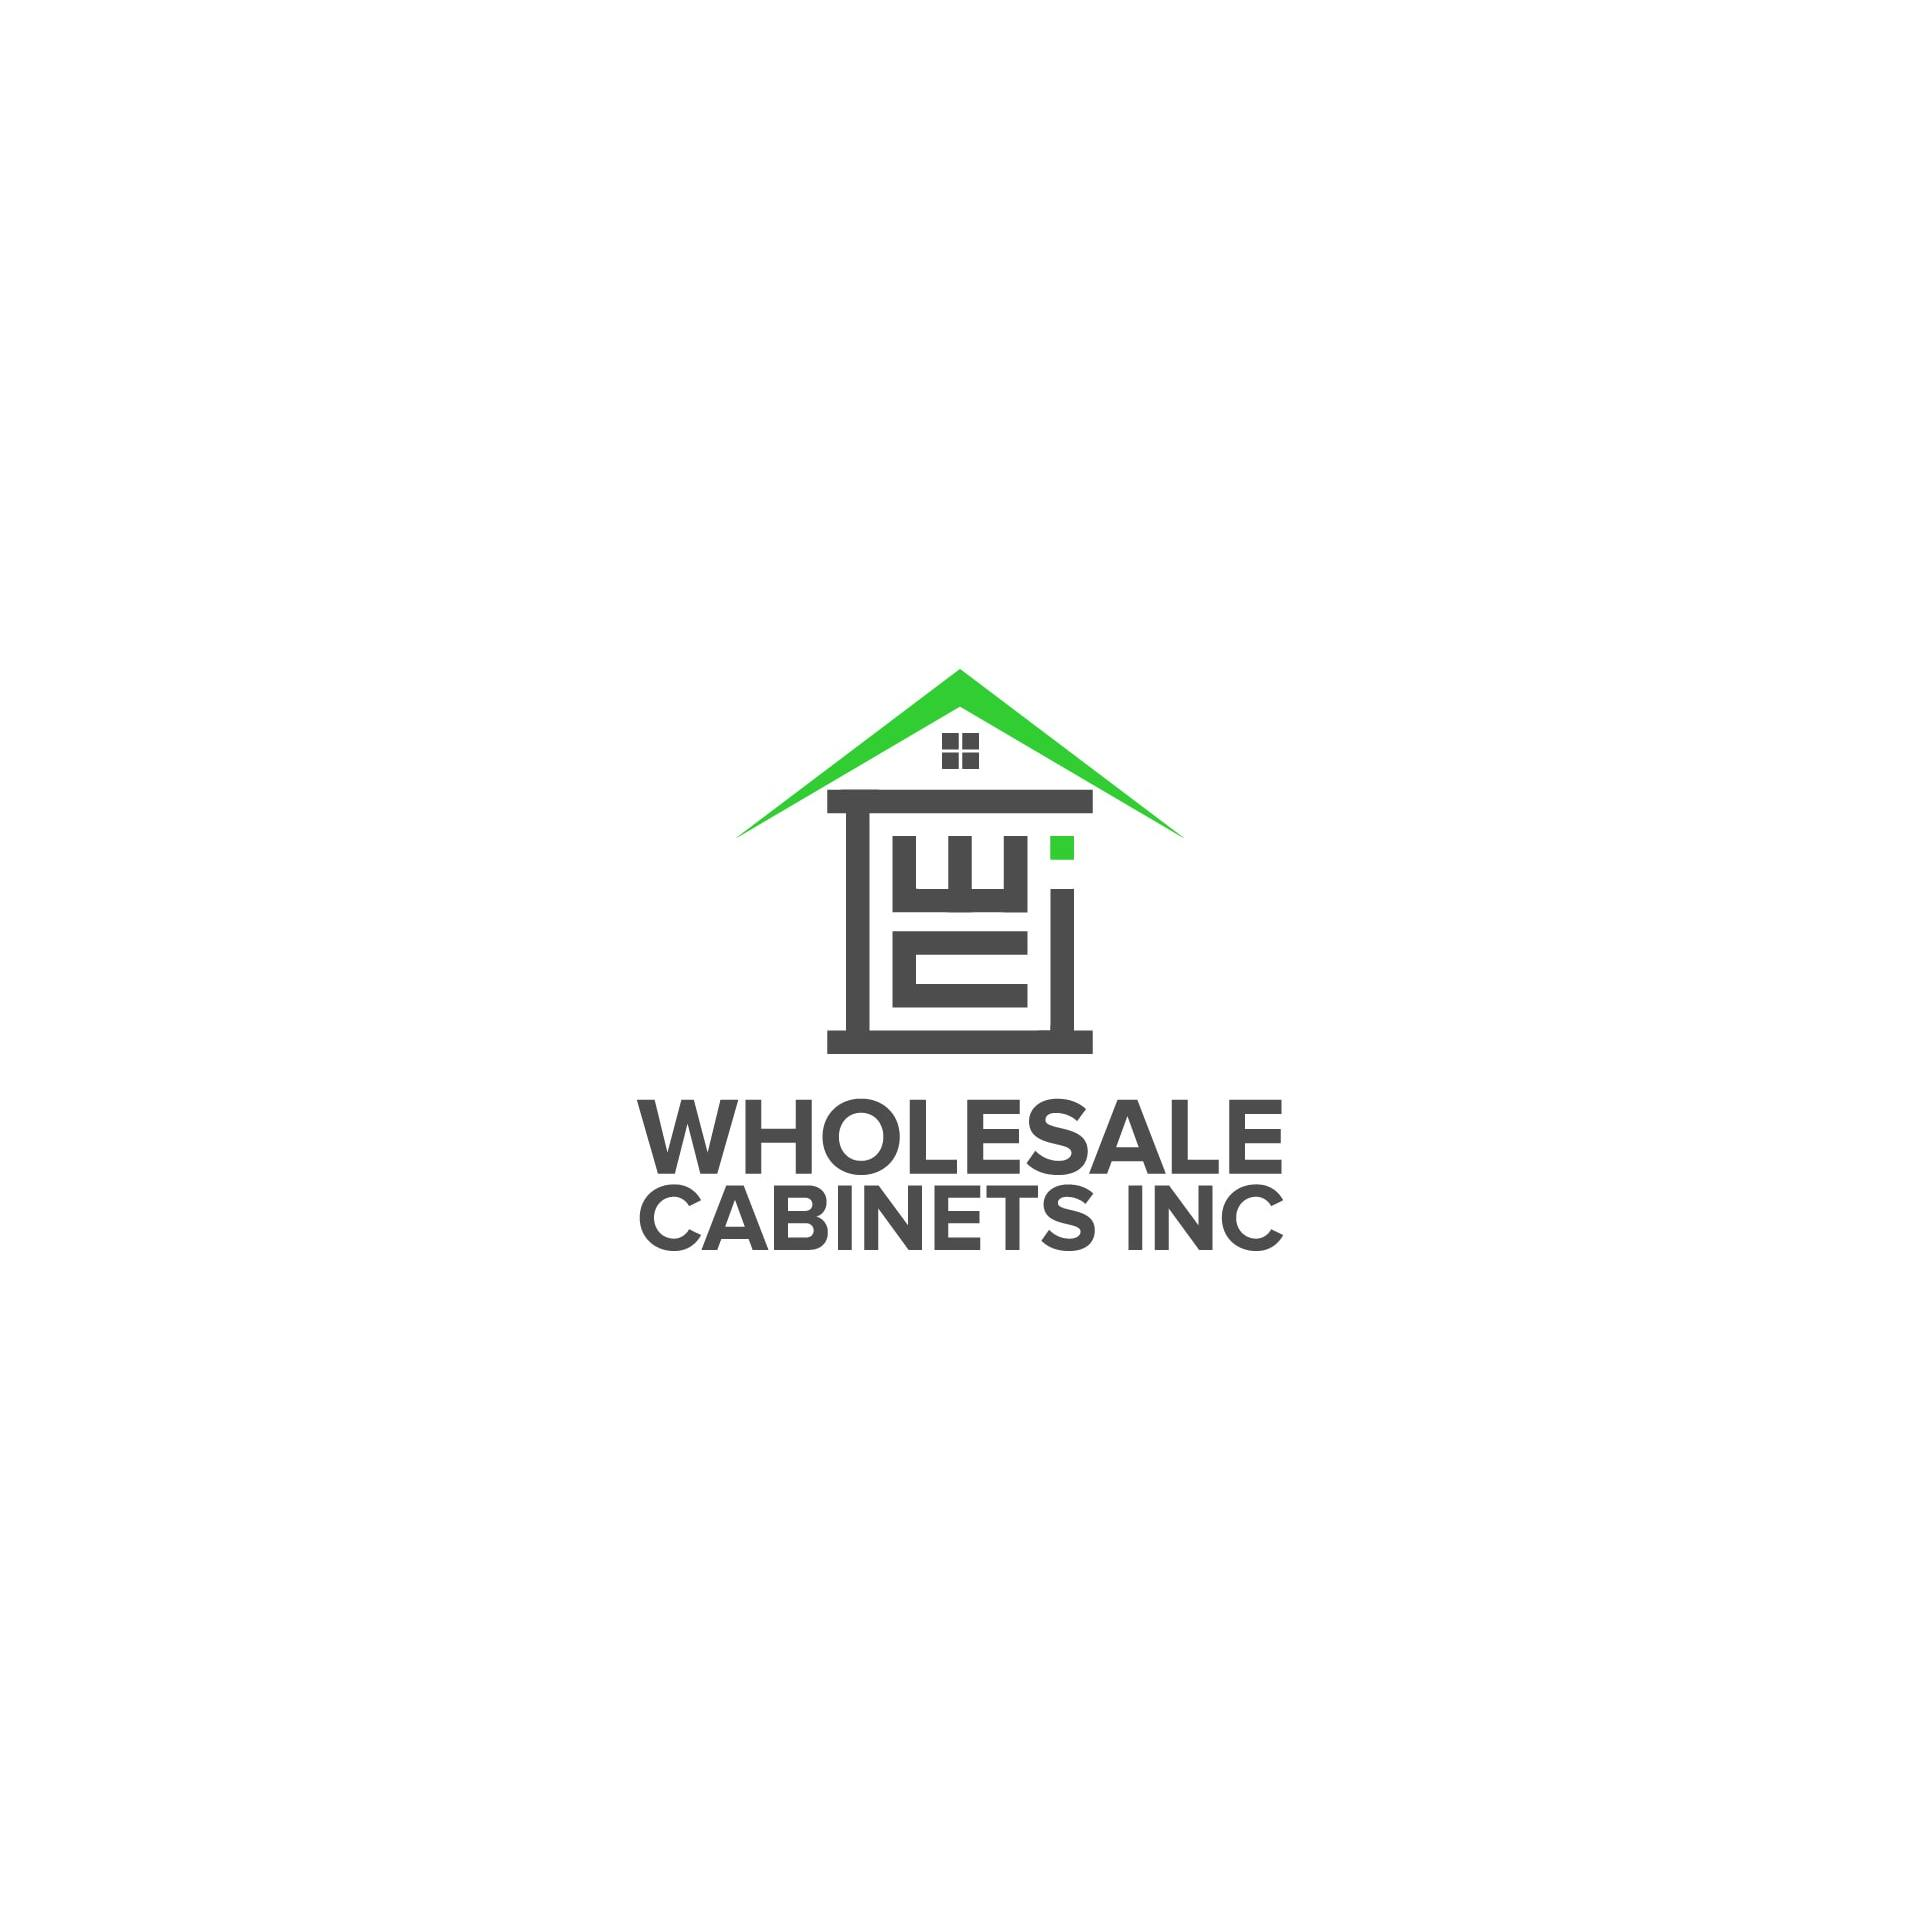 Wholesale Cabinets Inc